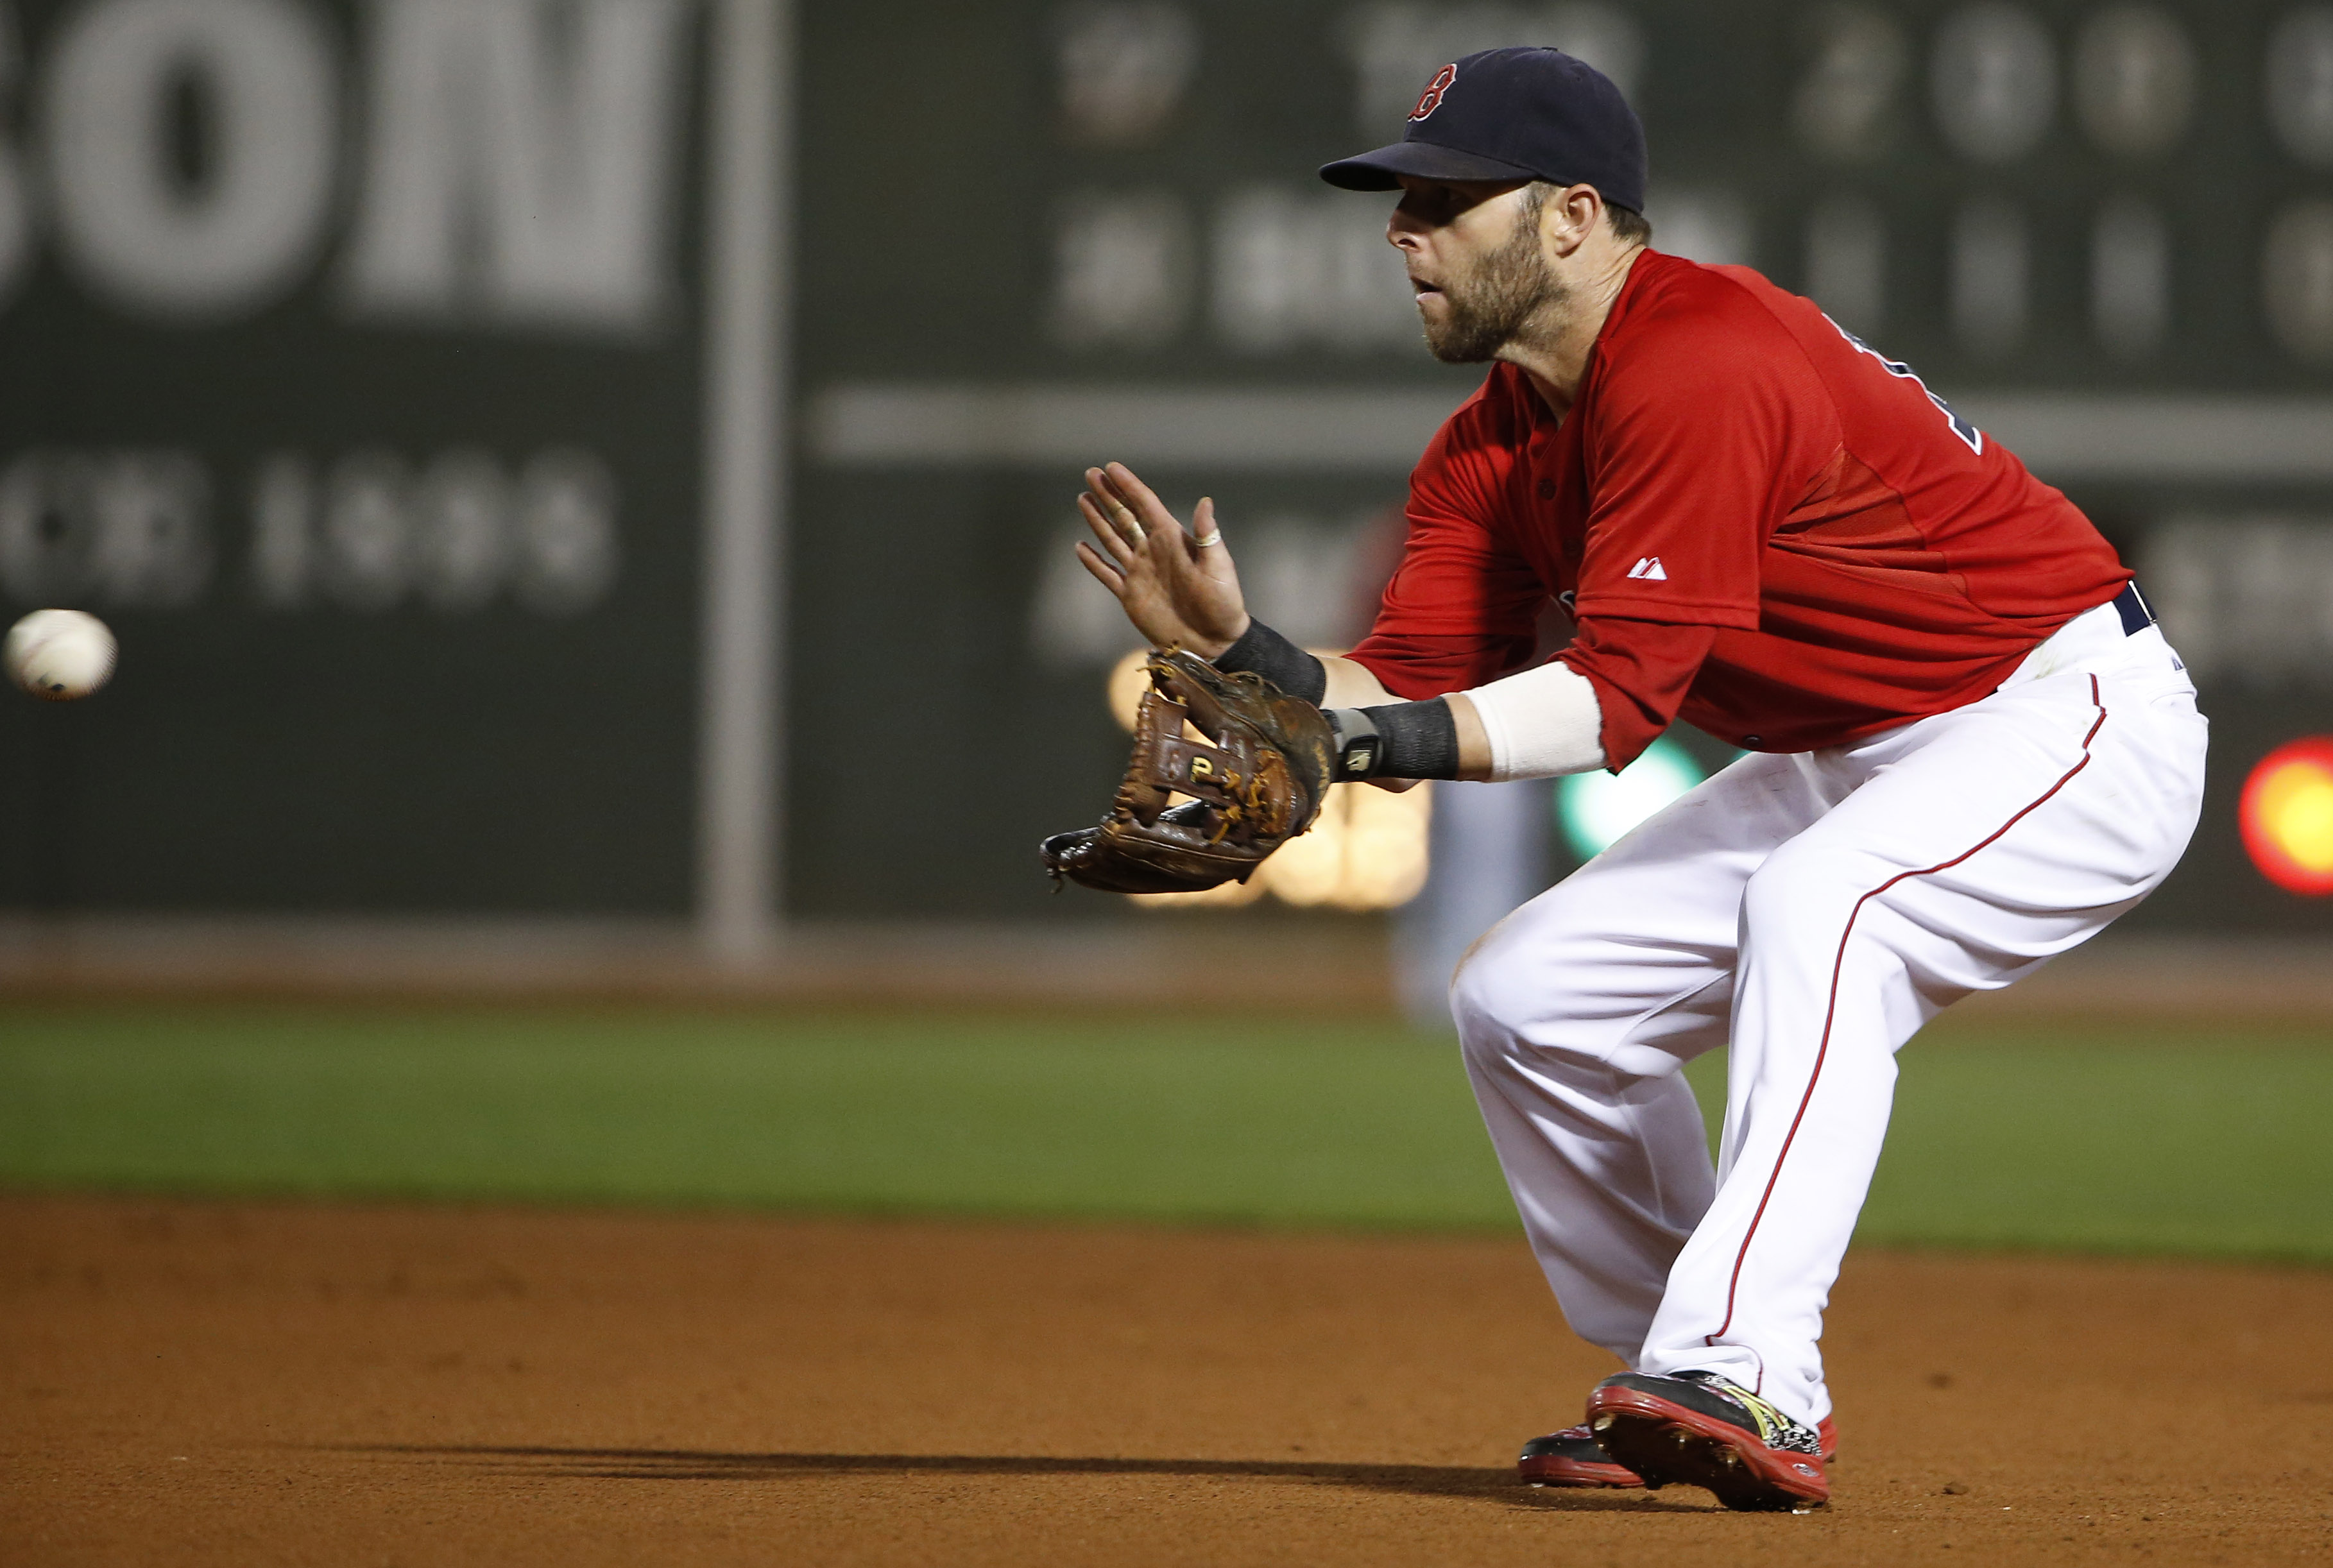 Pedroia, Cespedes, Bradley All Named Finalists For Gold Gloves